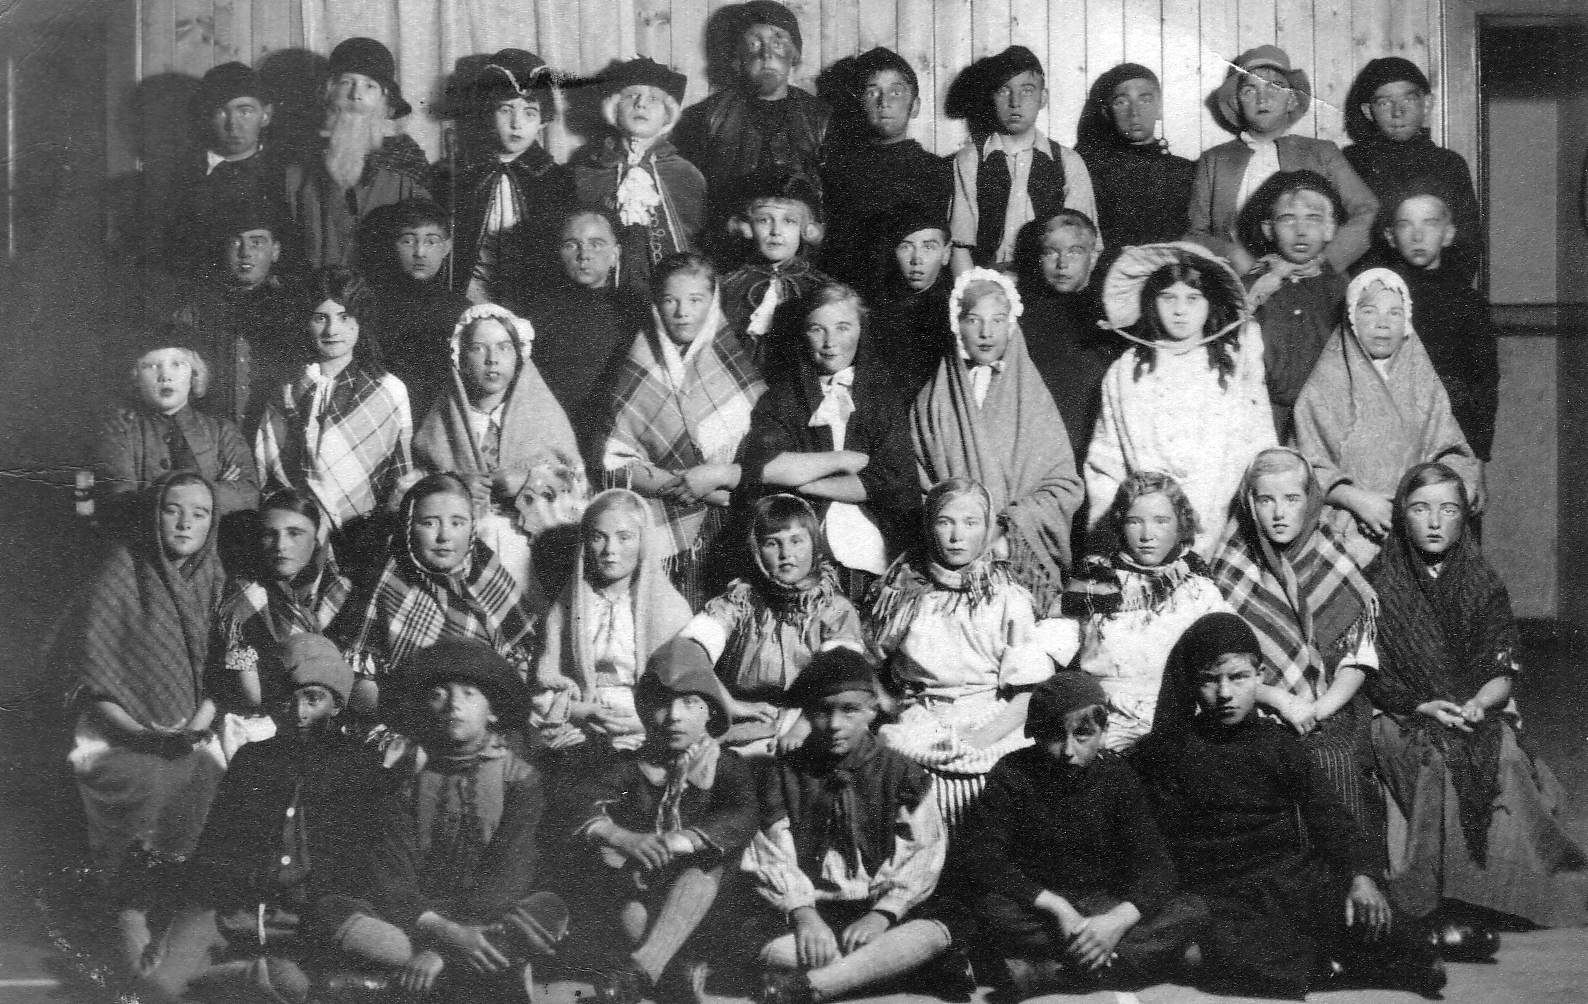 Children Dressed Up For Show 1930s